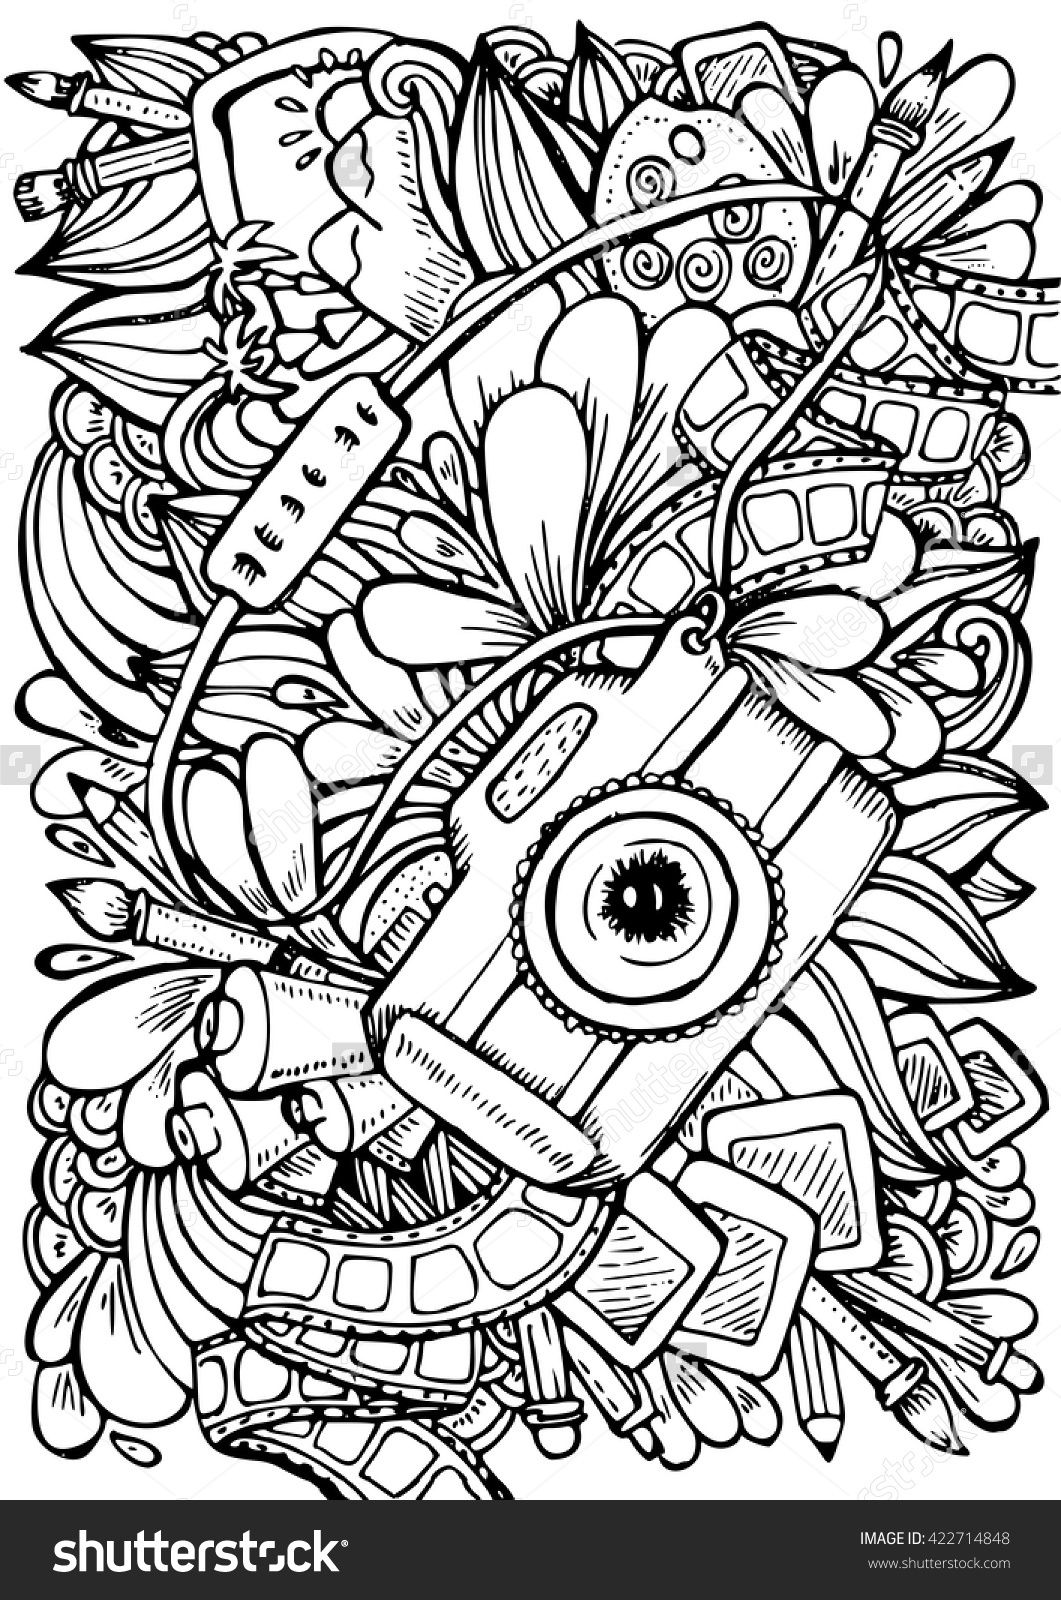 Vector hand drawn pattern. Anti stress coloring book page ...